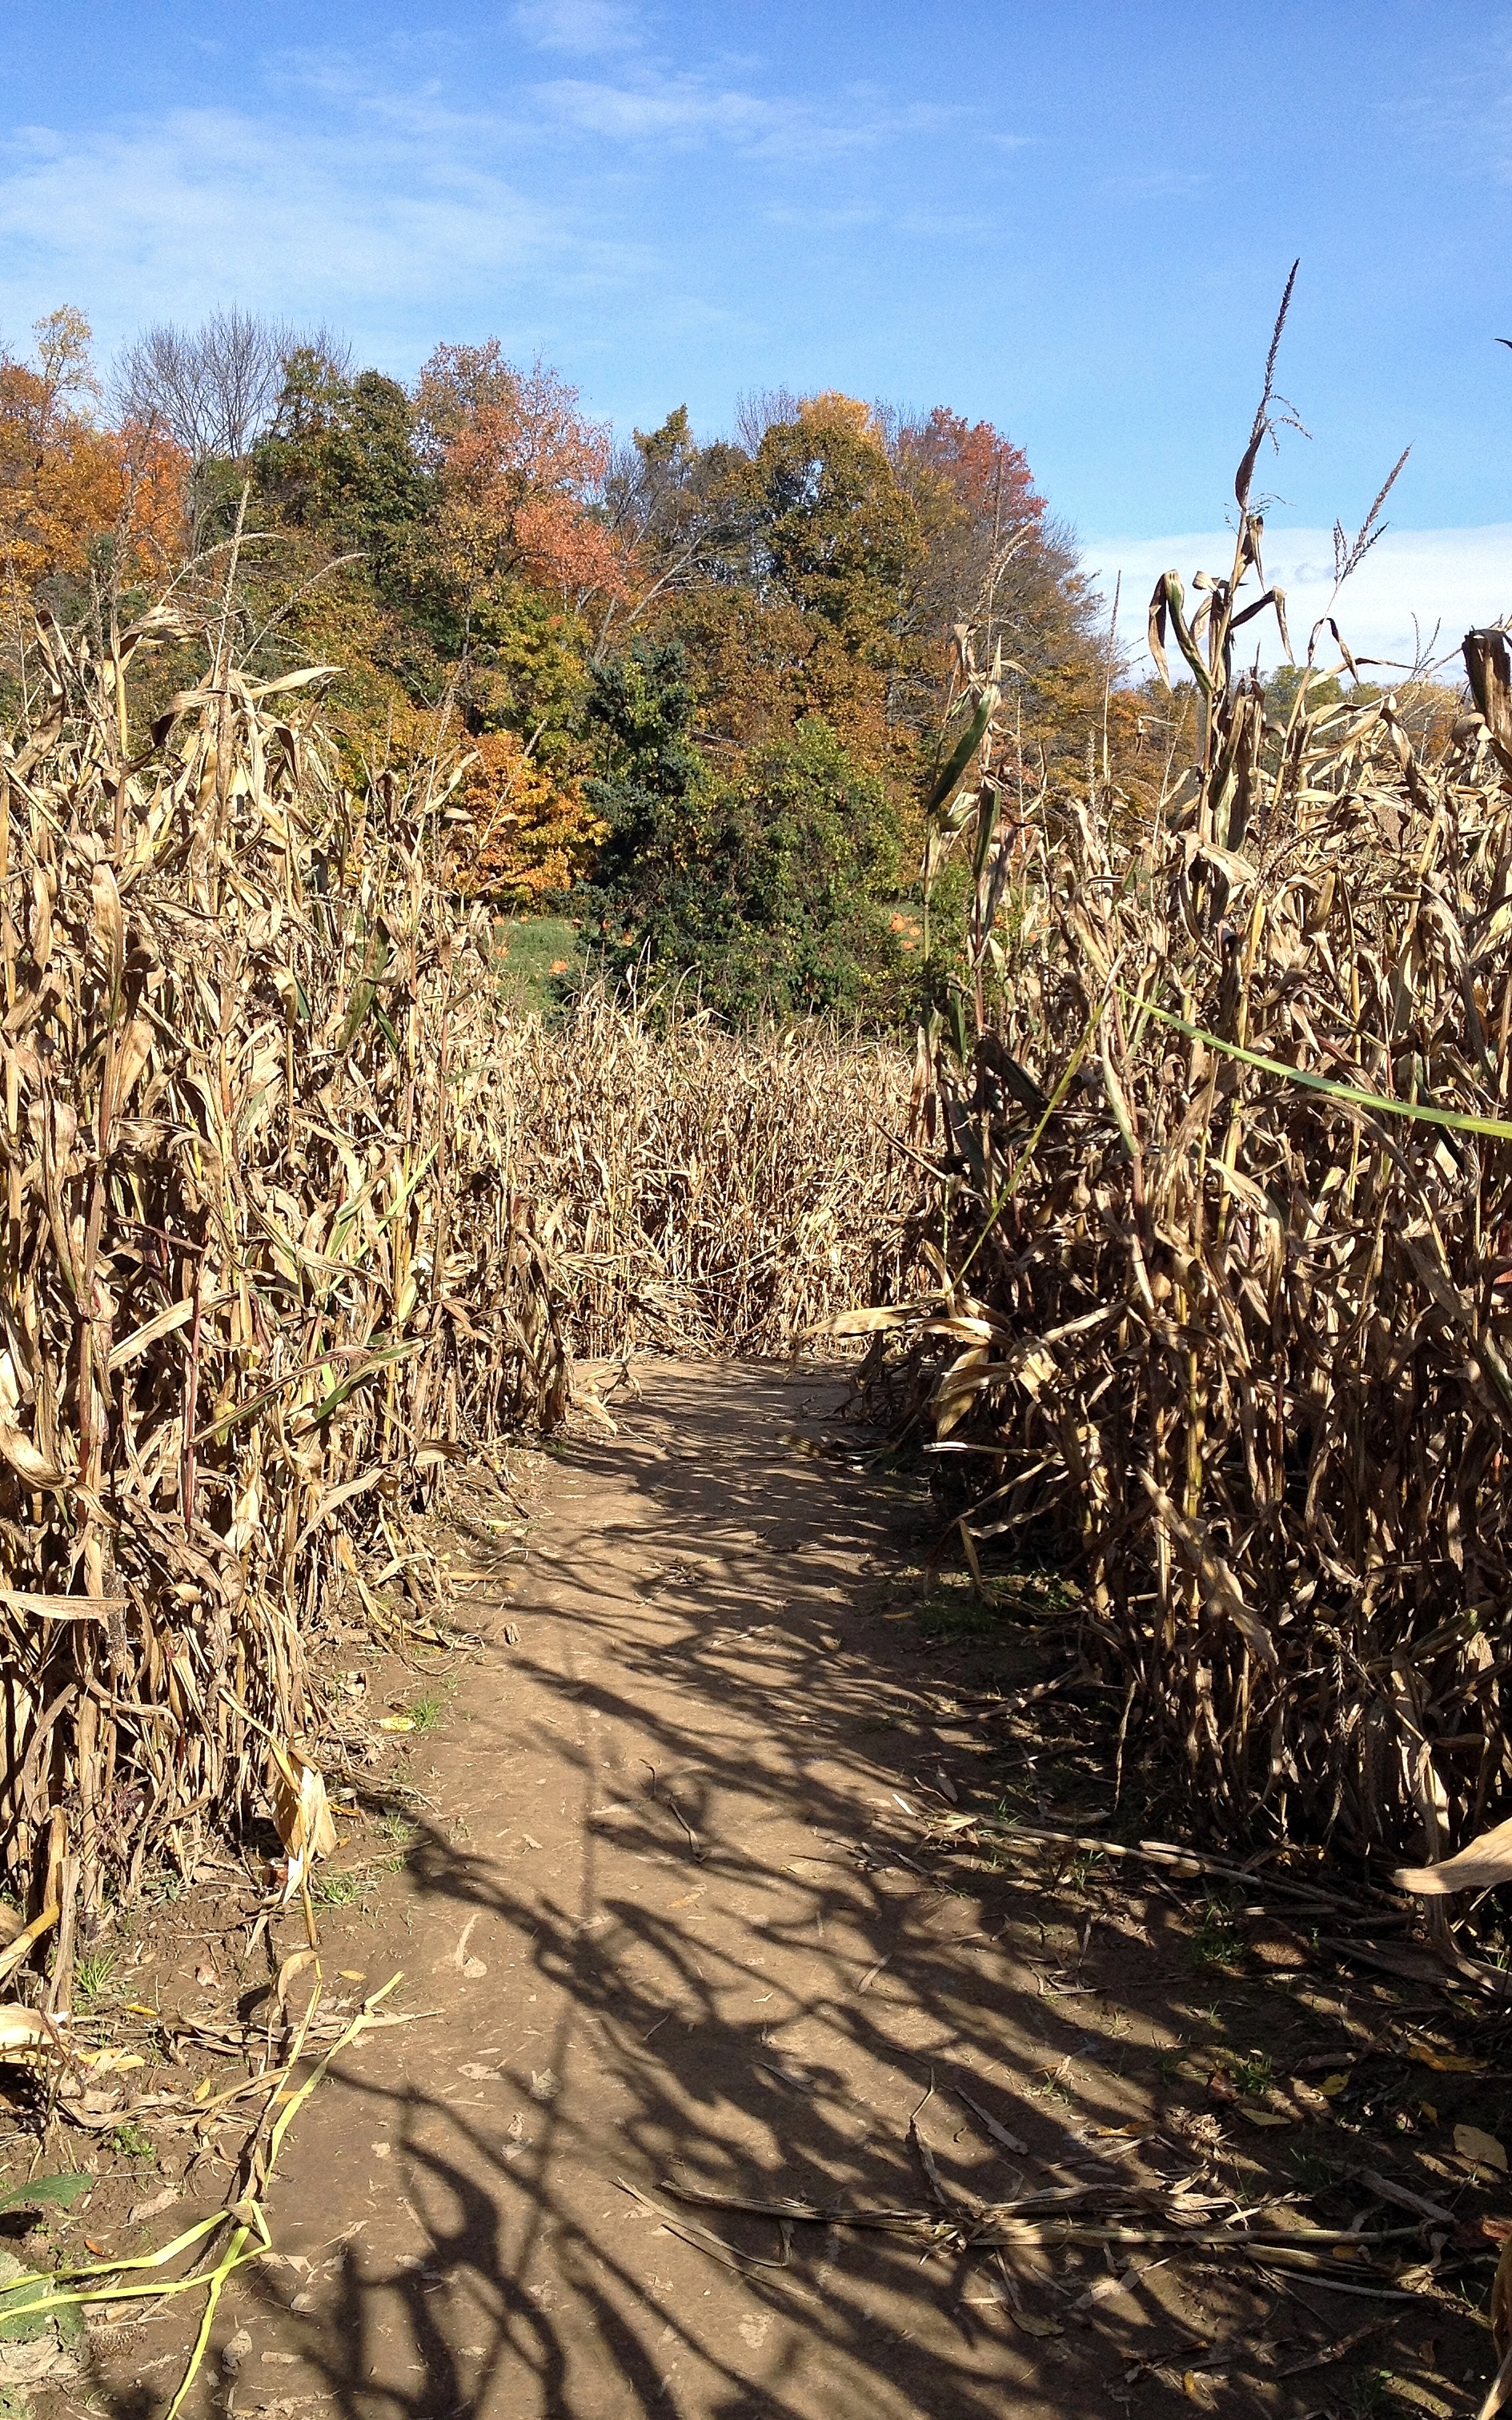 """We did a corn maze! It was a first for the both of us. I tried the old """"keep your left hand on the wall"""" trick, but either screwed up or debunked it. We still got out pretty quickly, though."""